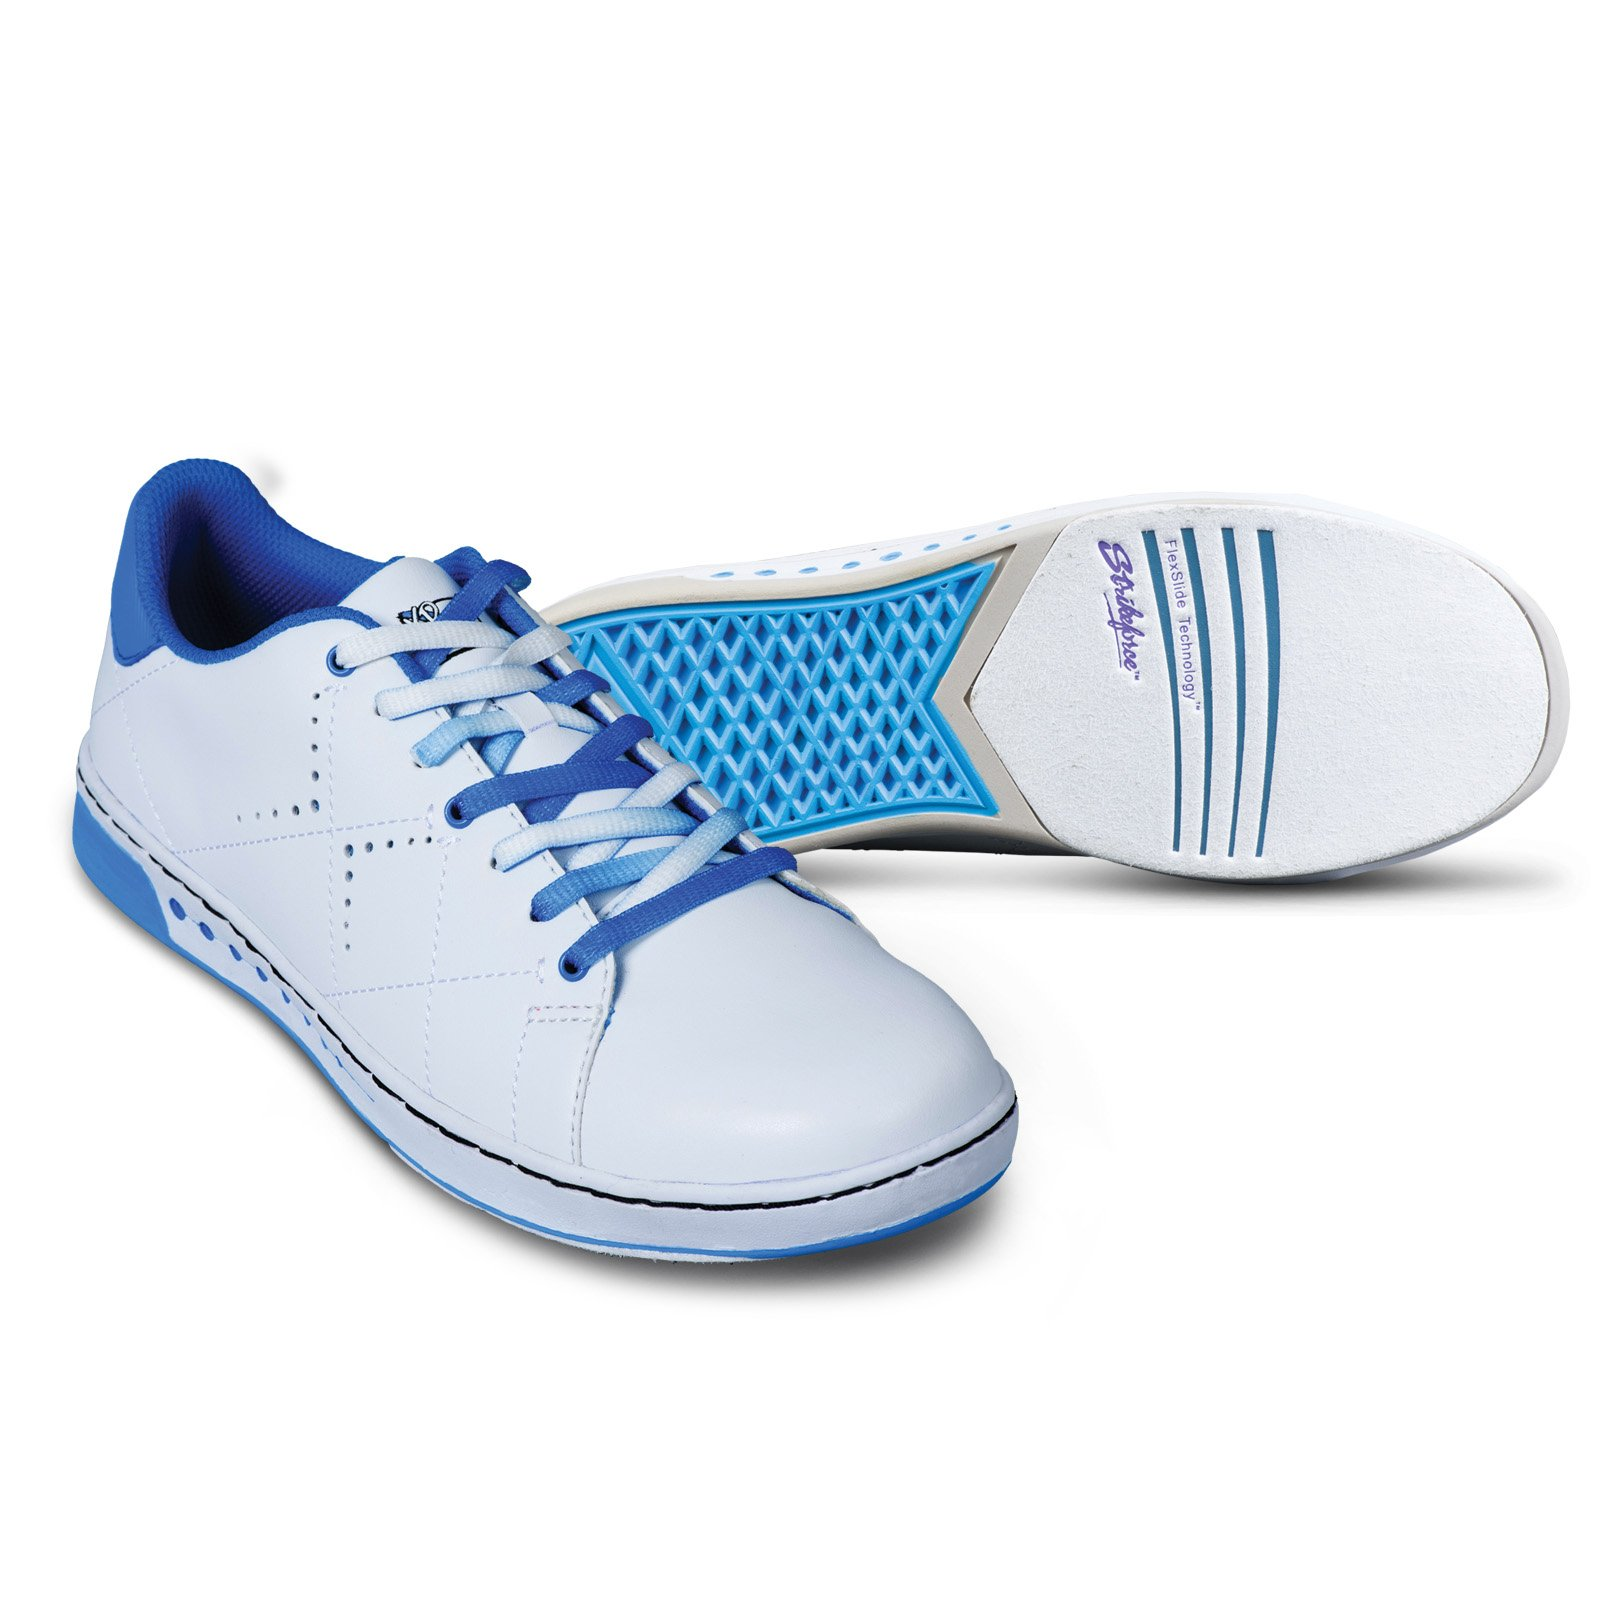 KR Strikeforce Women's Gem Wide Width Bowling Shoes, White/Blue, Size 8.5 by KR Strikeforce